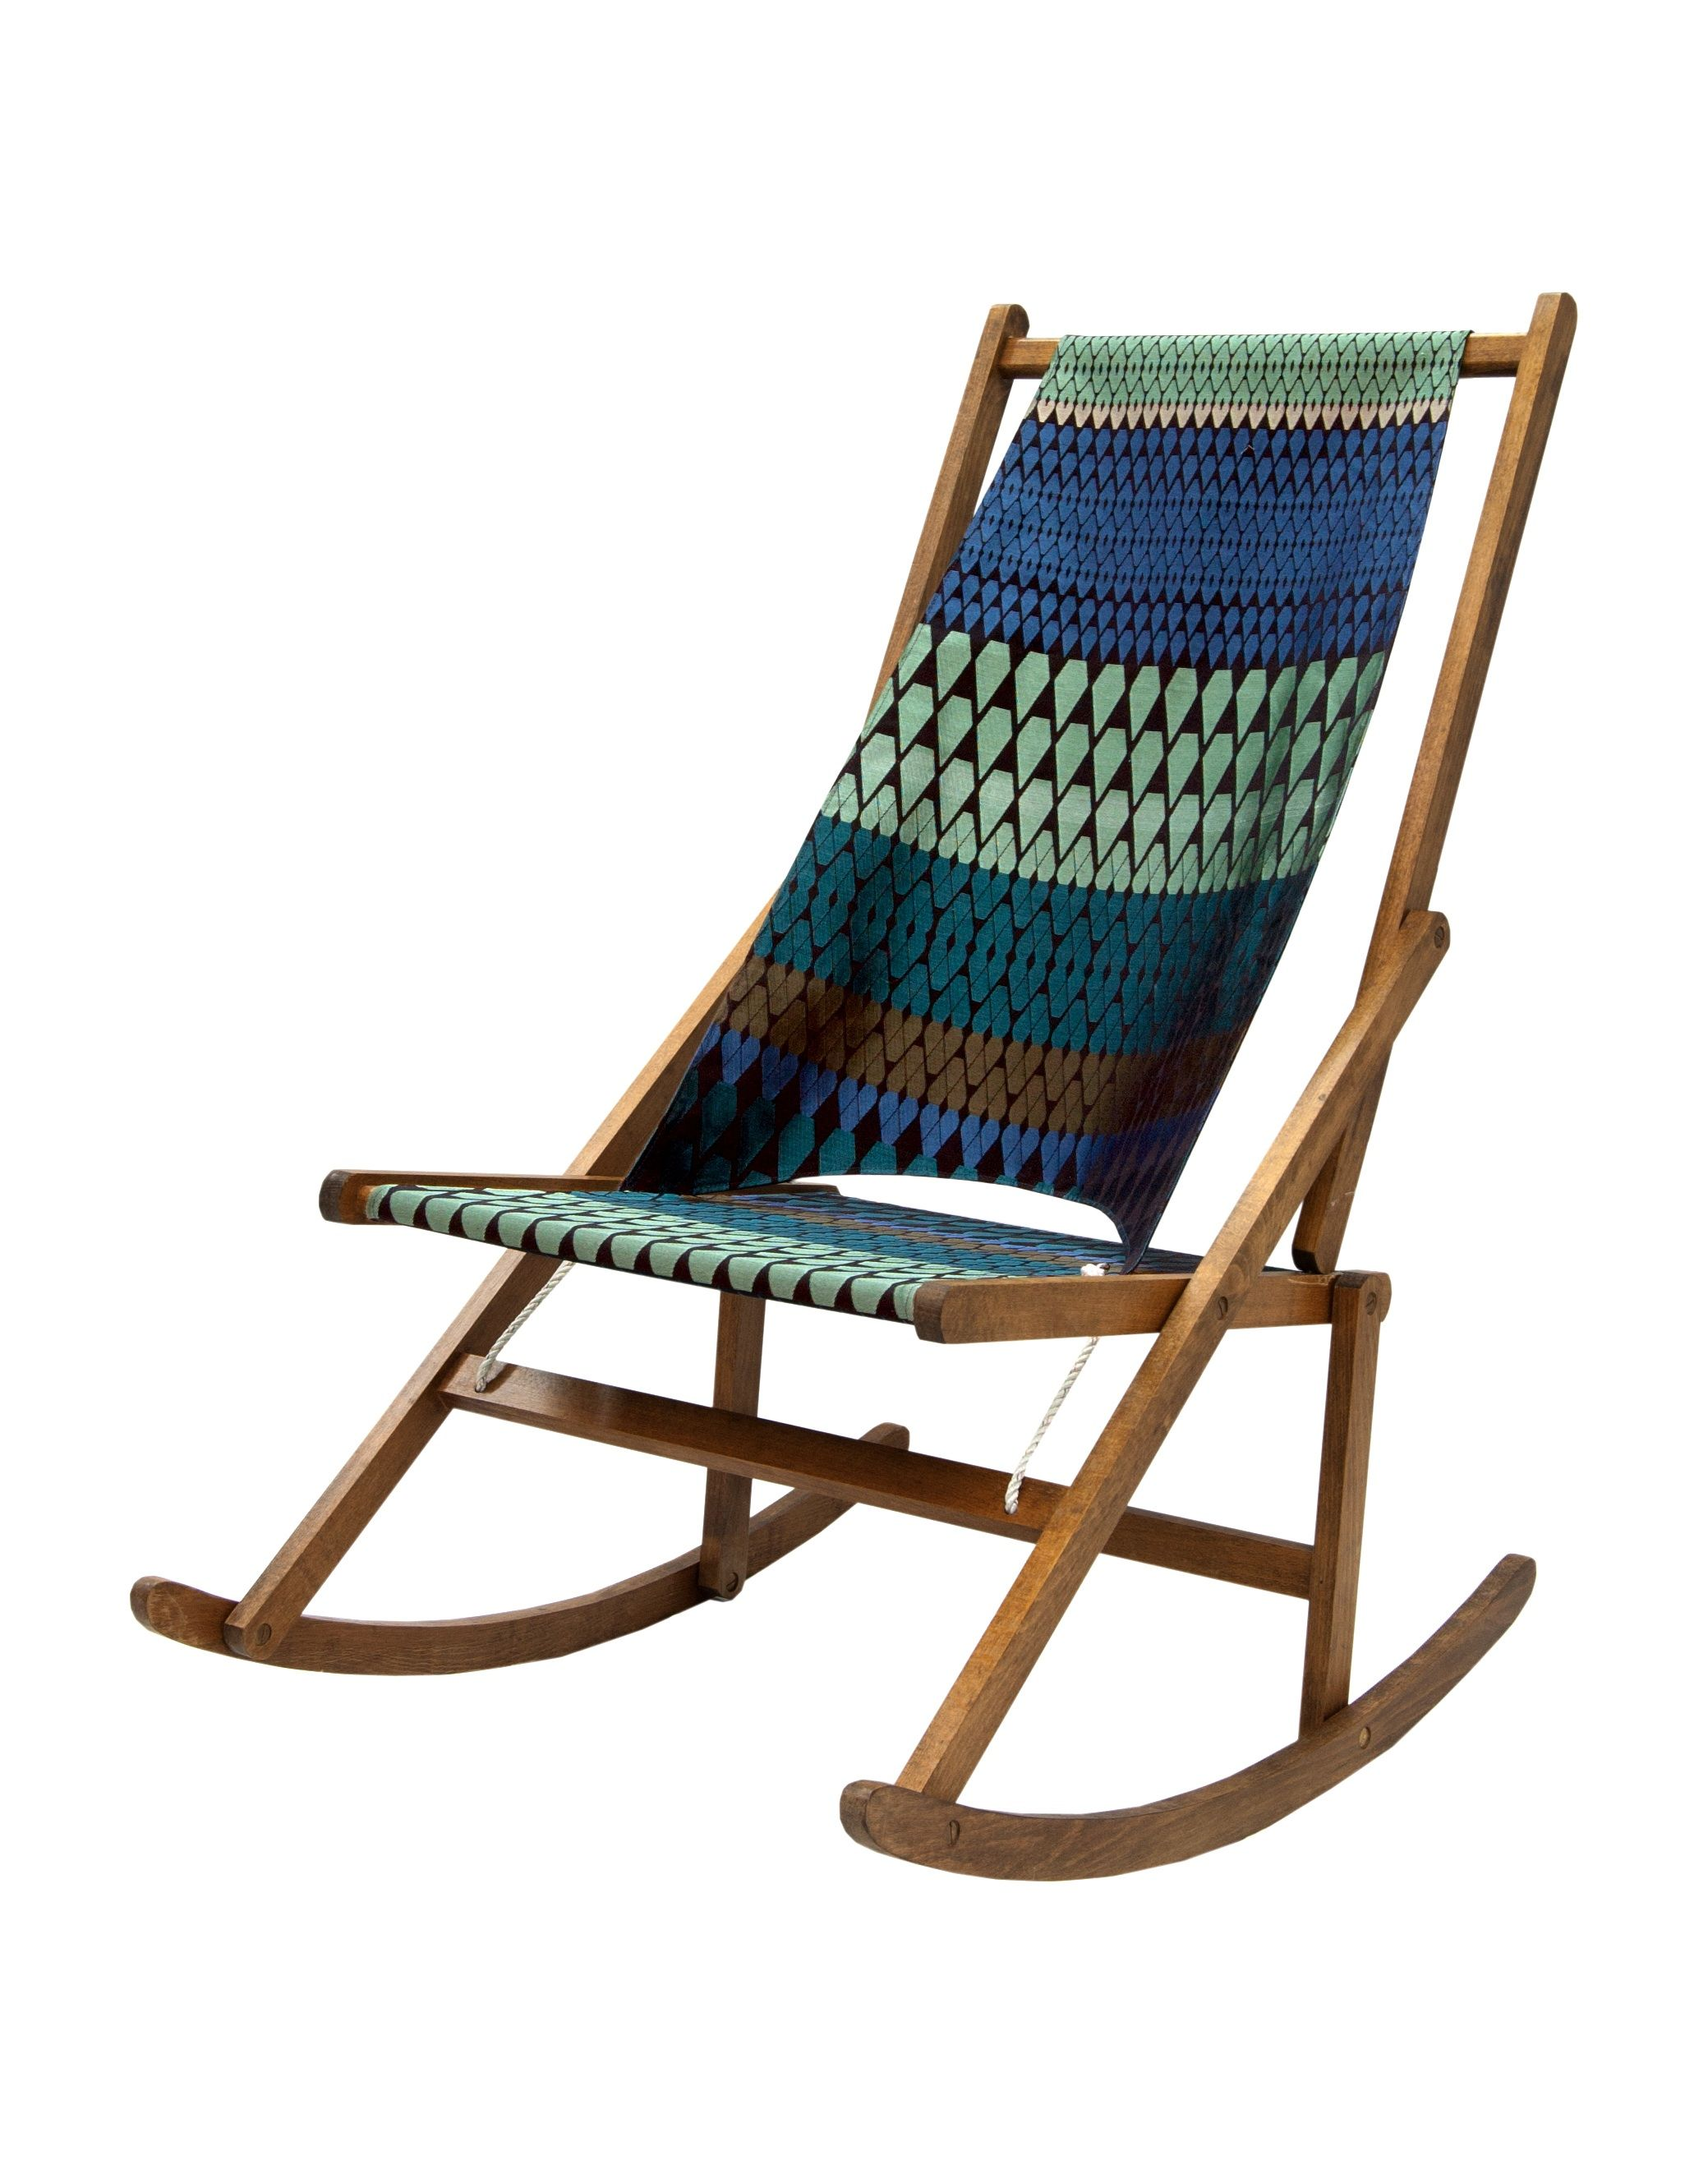 WANT ONE Folding Rocking Chair made by Wawa upholstered in Margo Selby Wo